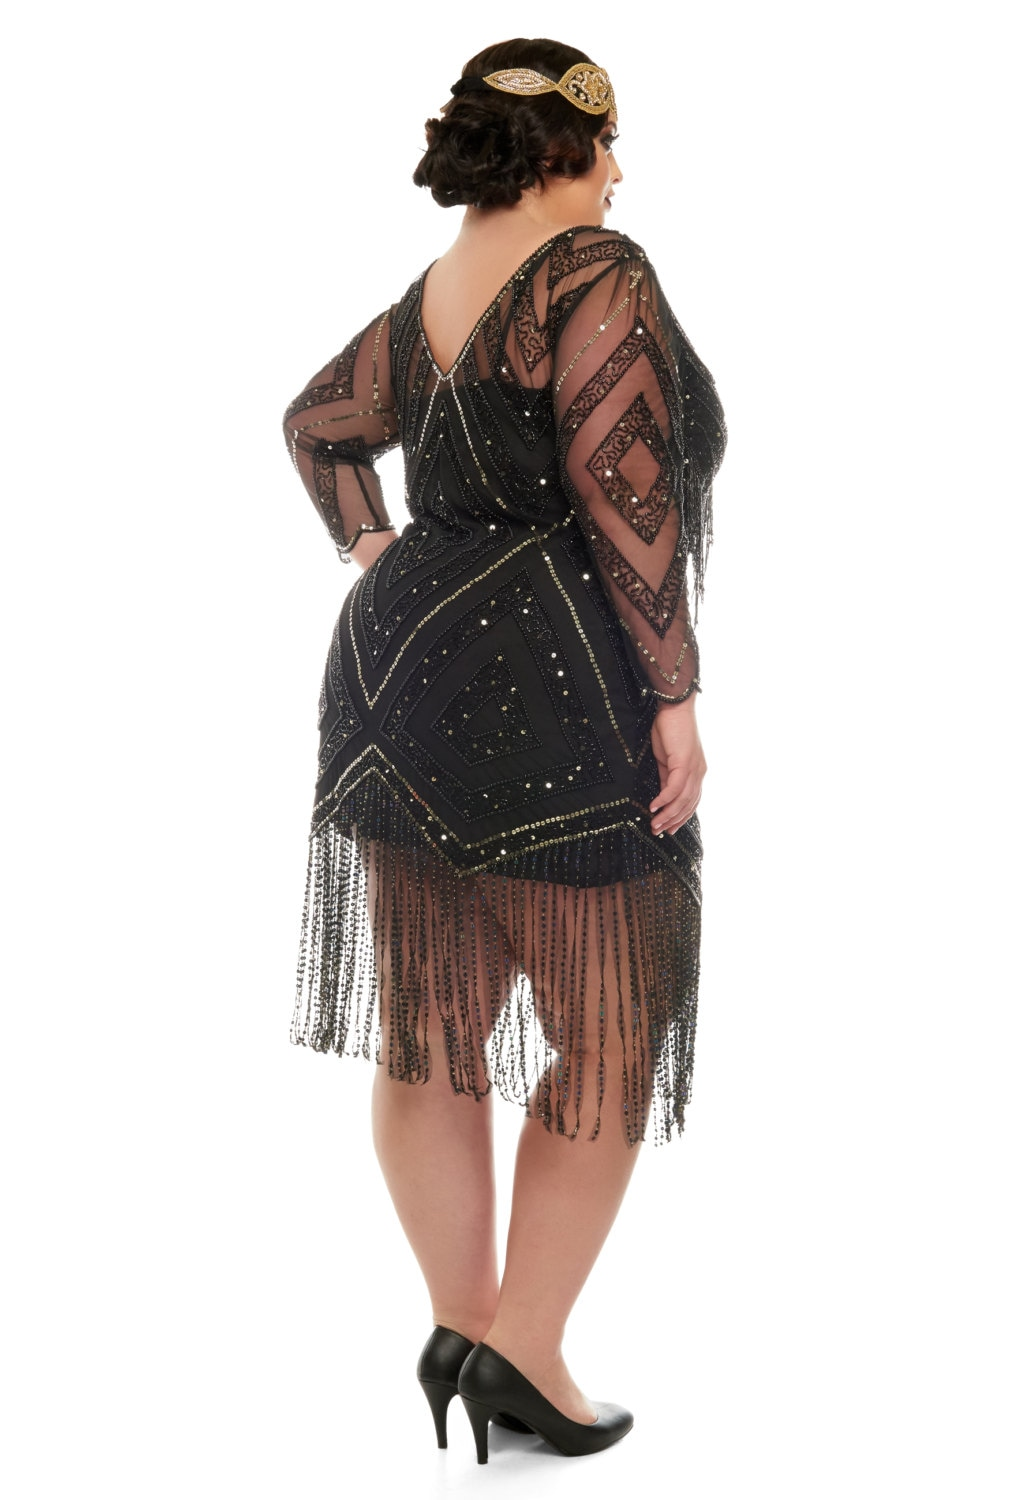 Plus Size Betty Black Fringe Dress With Sleeves Slip Included 20s